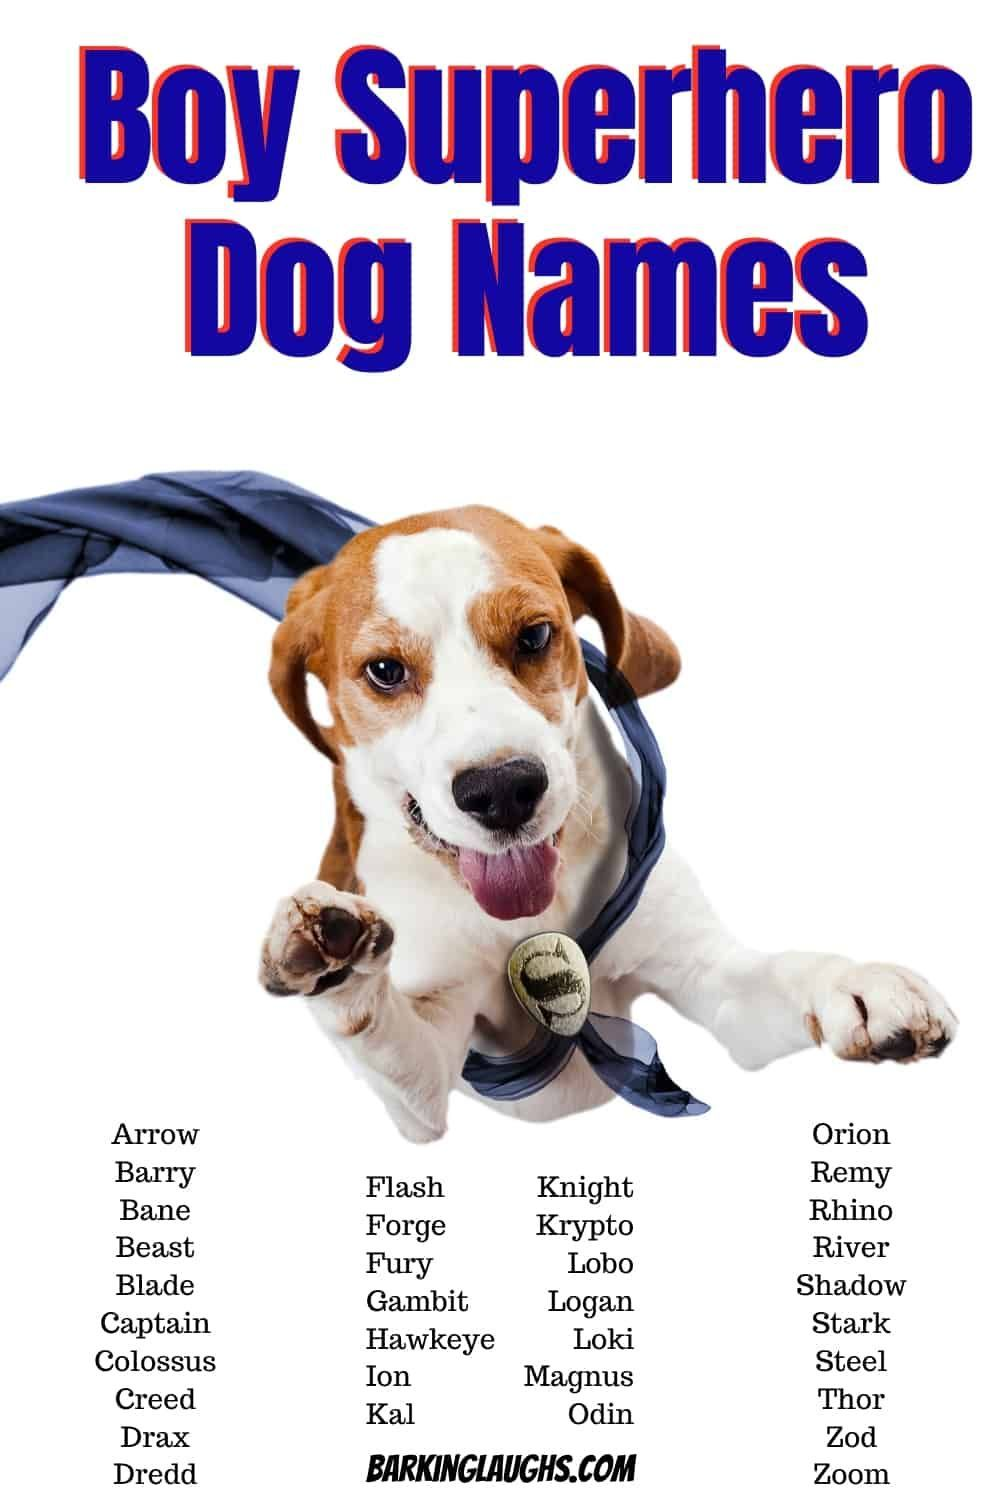 Some Boy Superhero Dog Names Are You Looking For Awesome Male Dog Names We Have Over 350 Boy Dog Names With In 2020 Boy Dog Names Good Boy Dog Names Dogs Names List